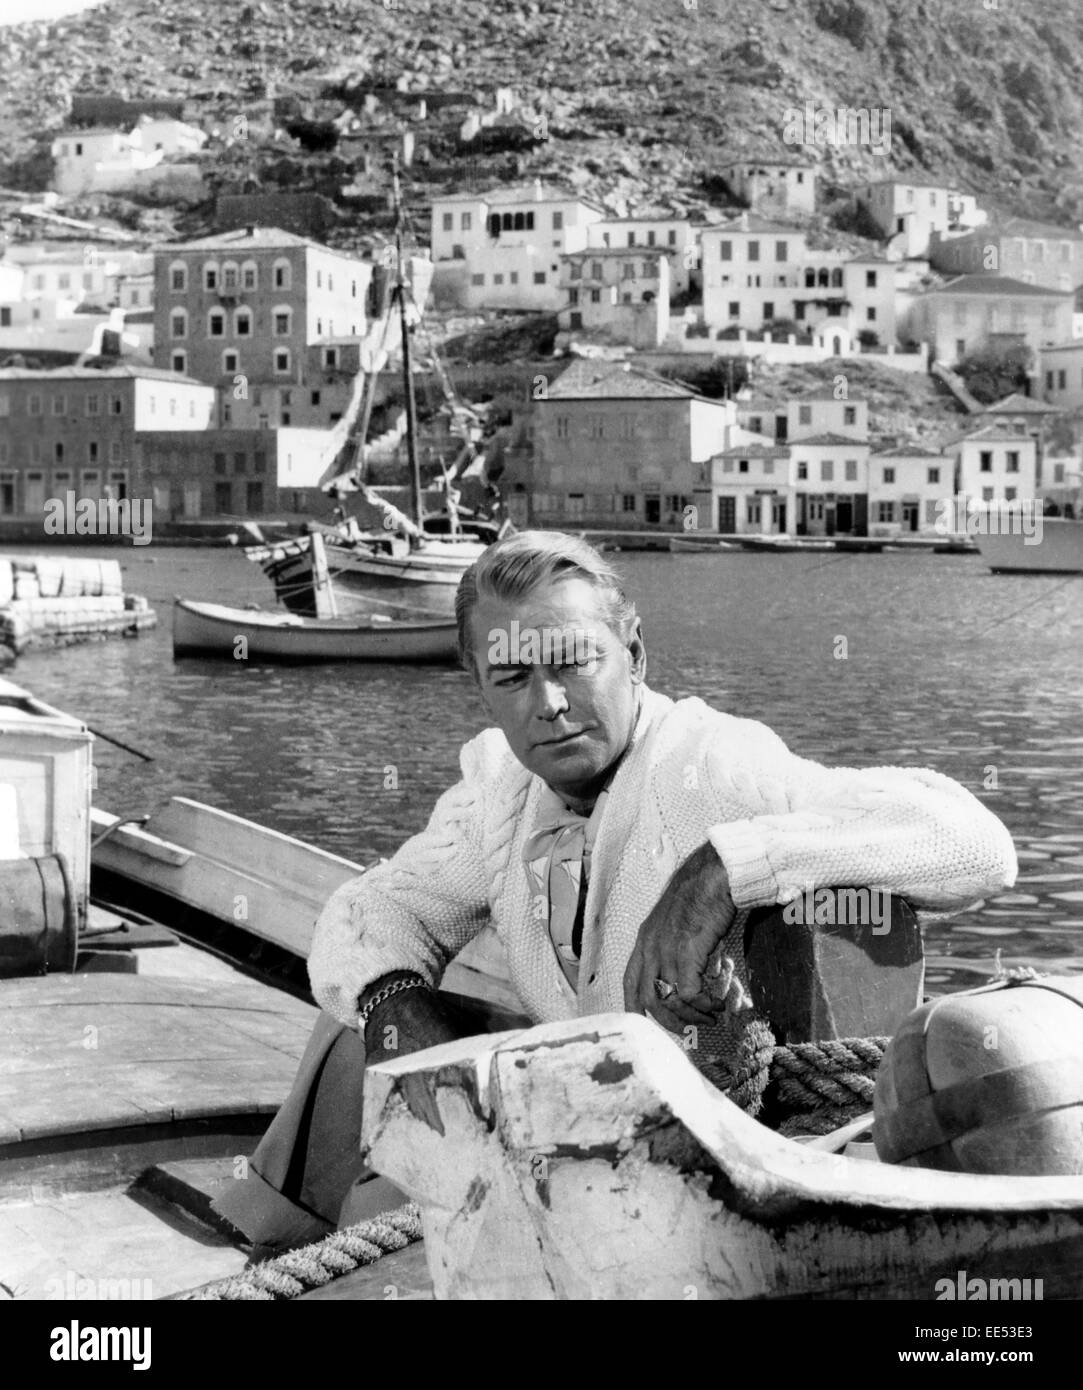 Alan Ladd, on-set of the Film, 'Boy on a Dolphin', 1957 - Stock Image